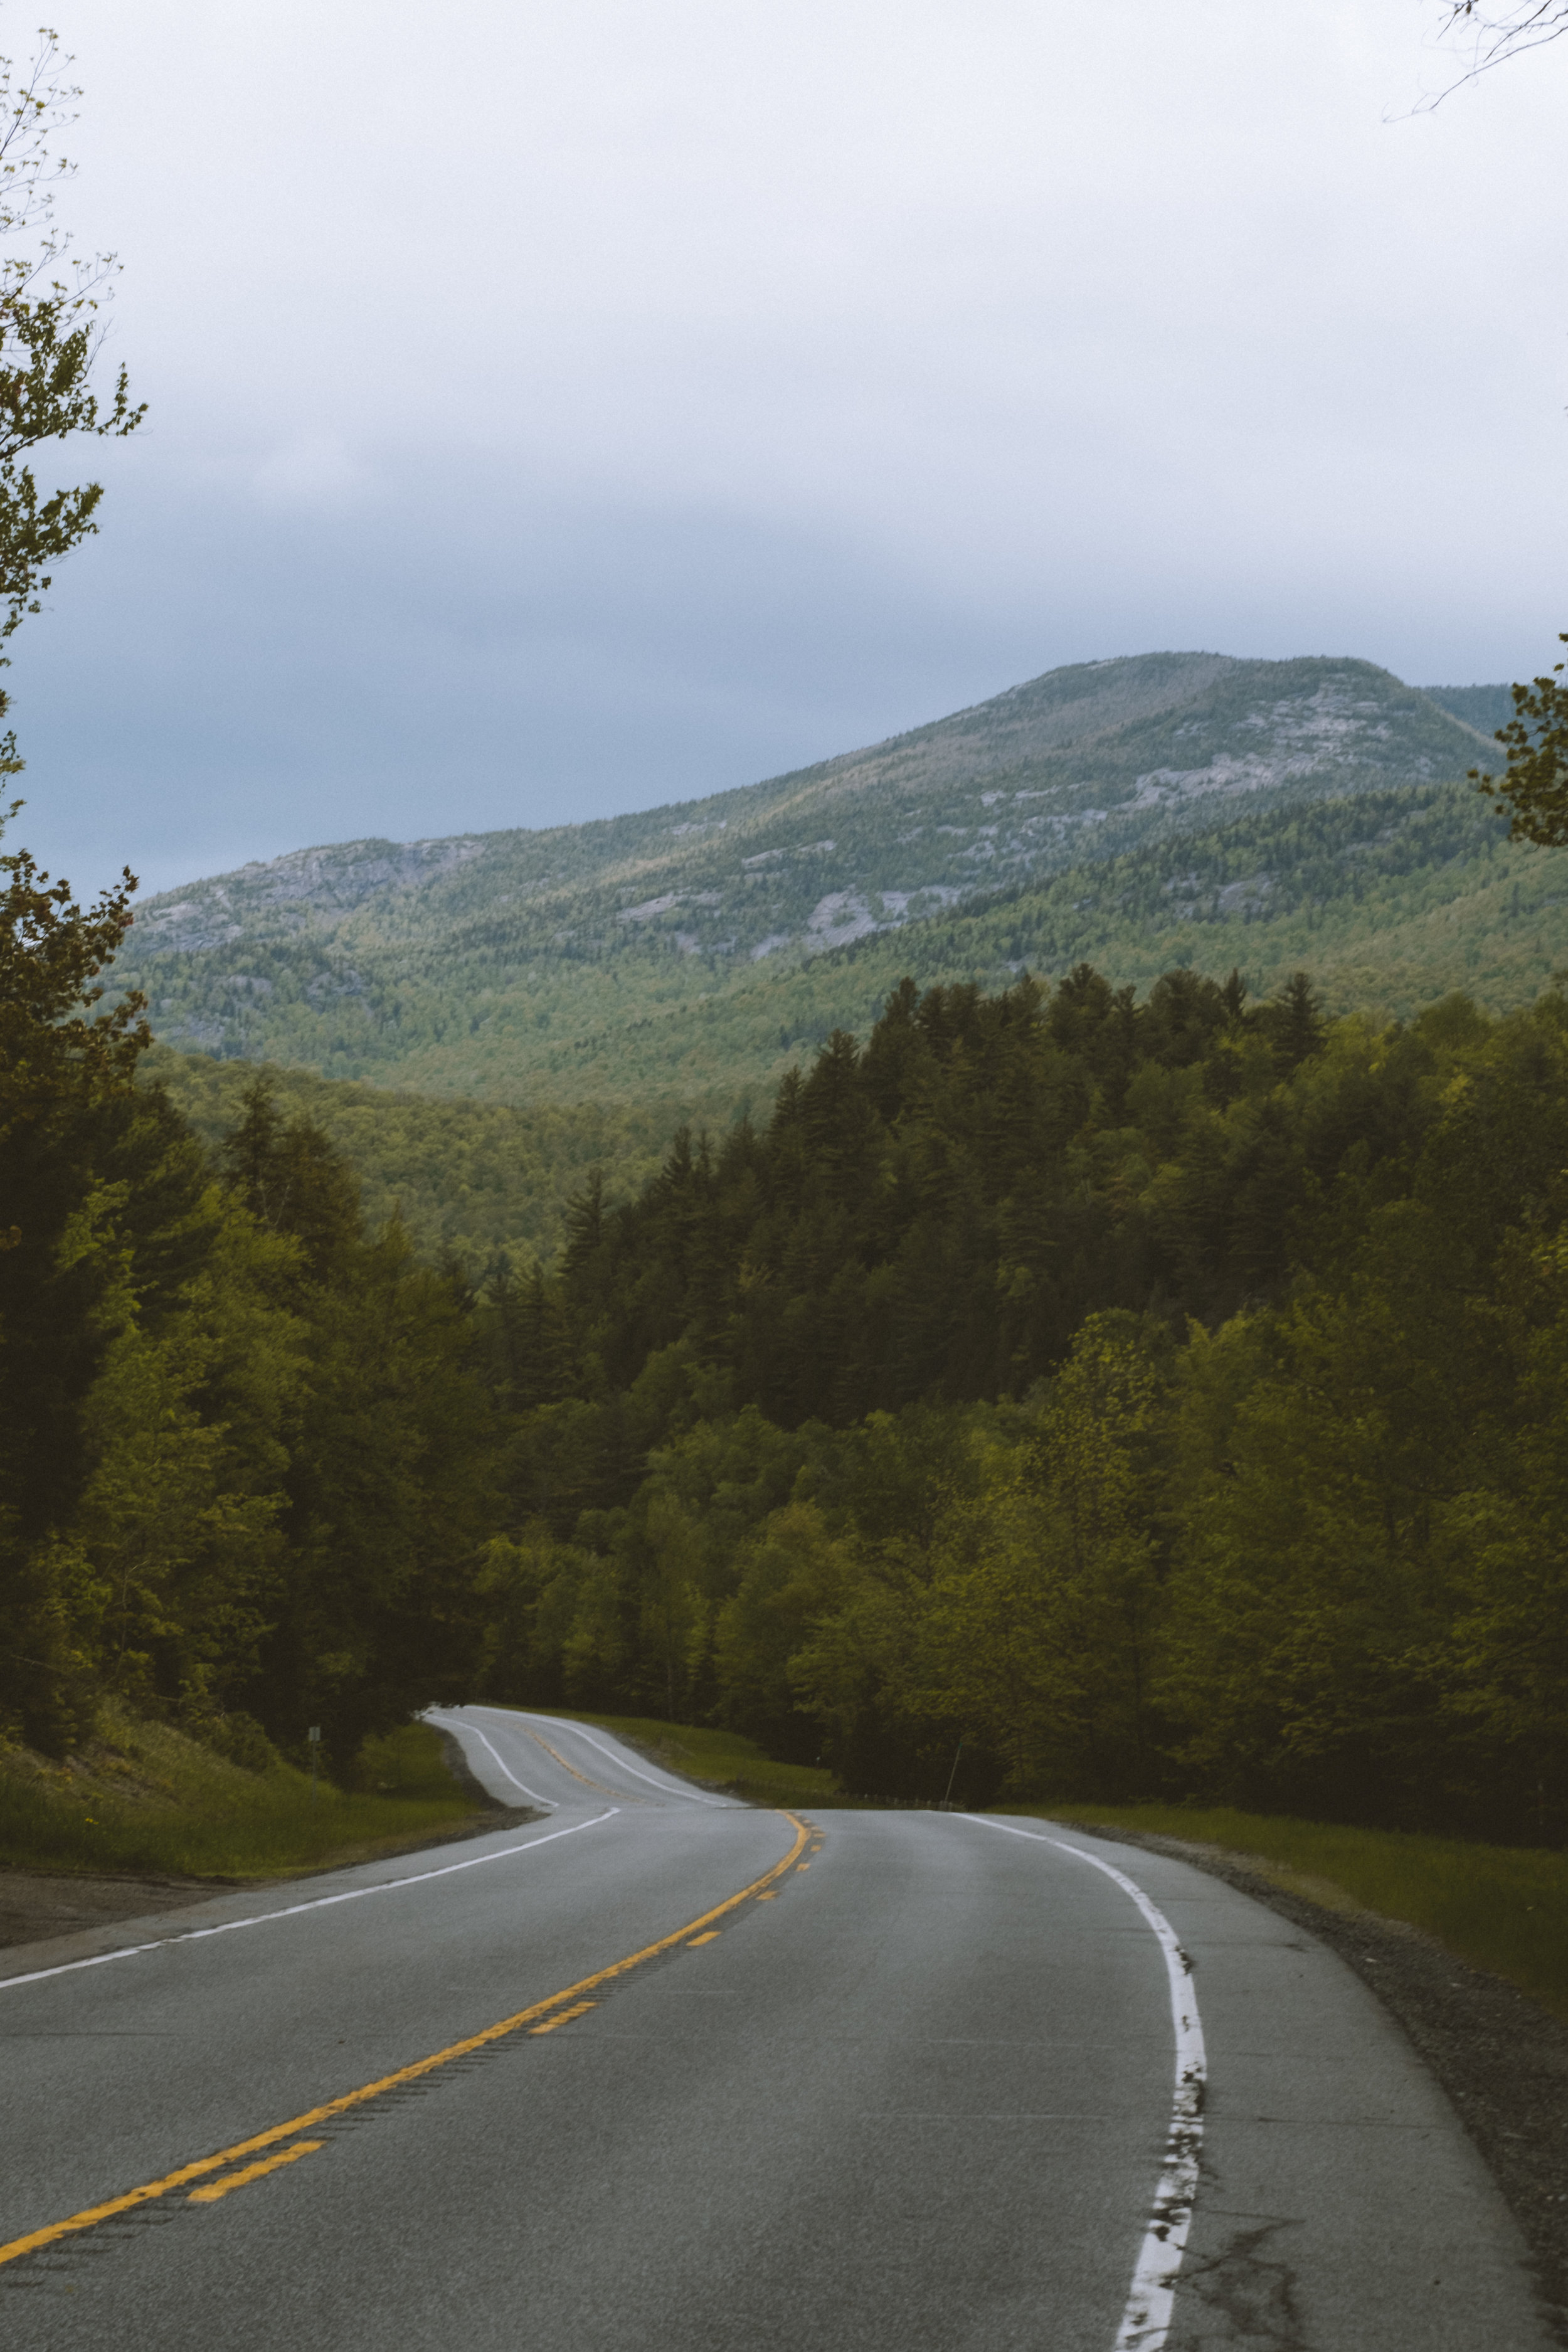 Route 73 in Keene Valley, NY